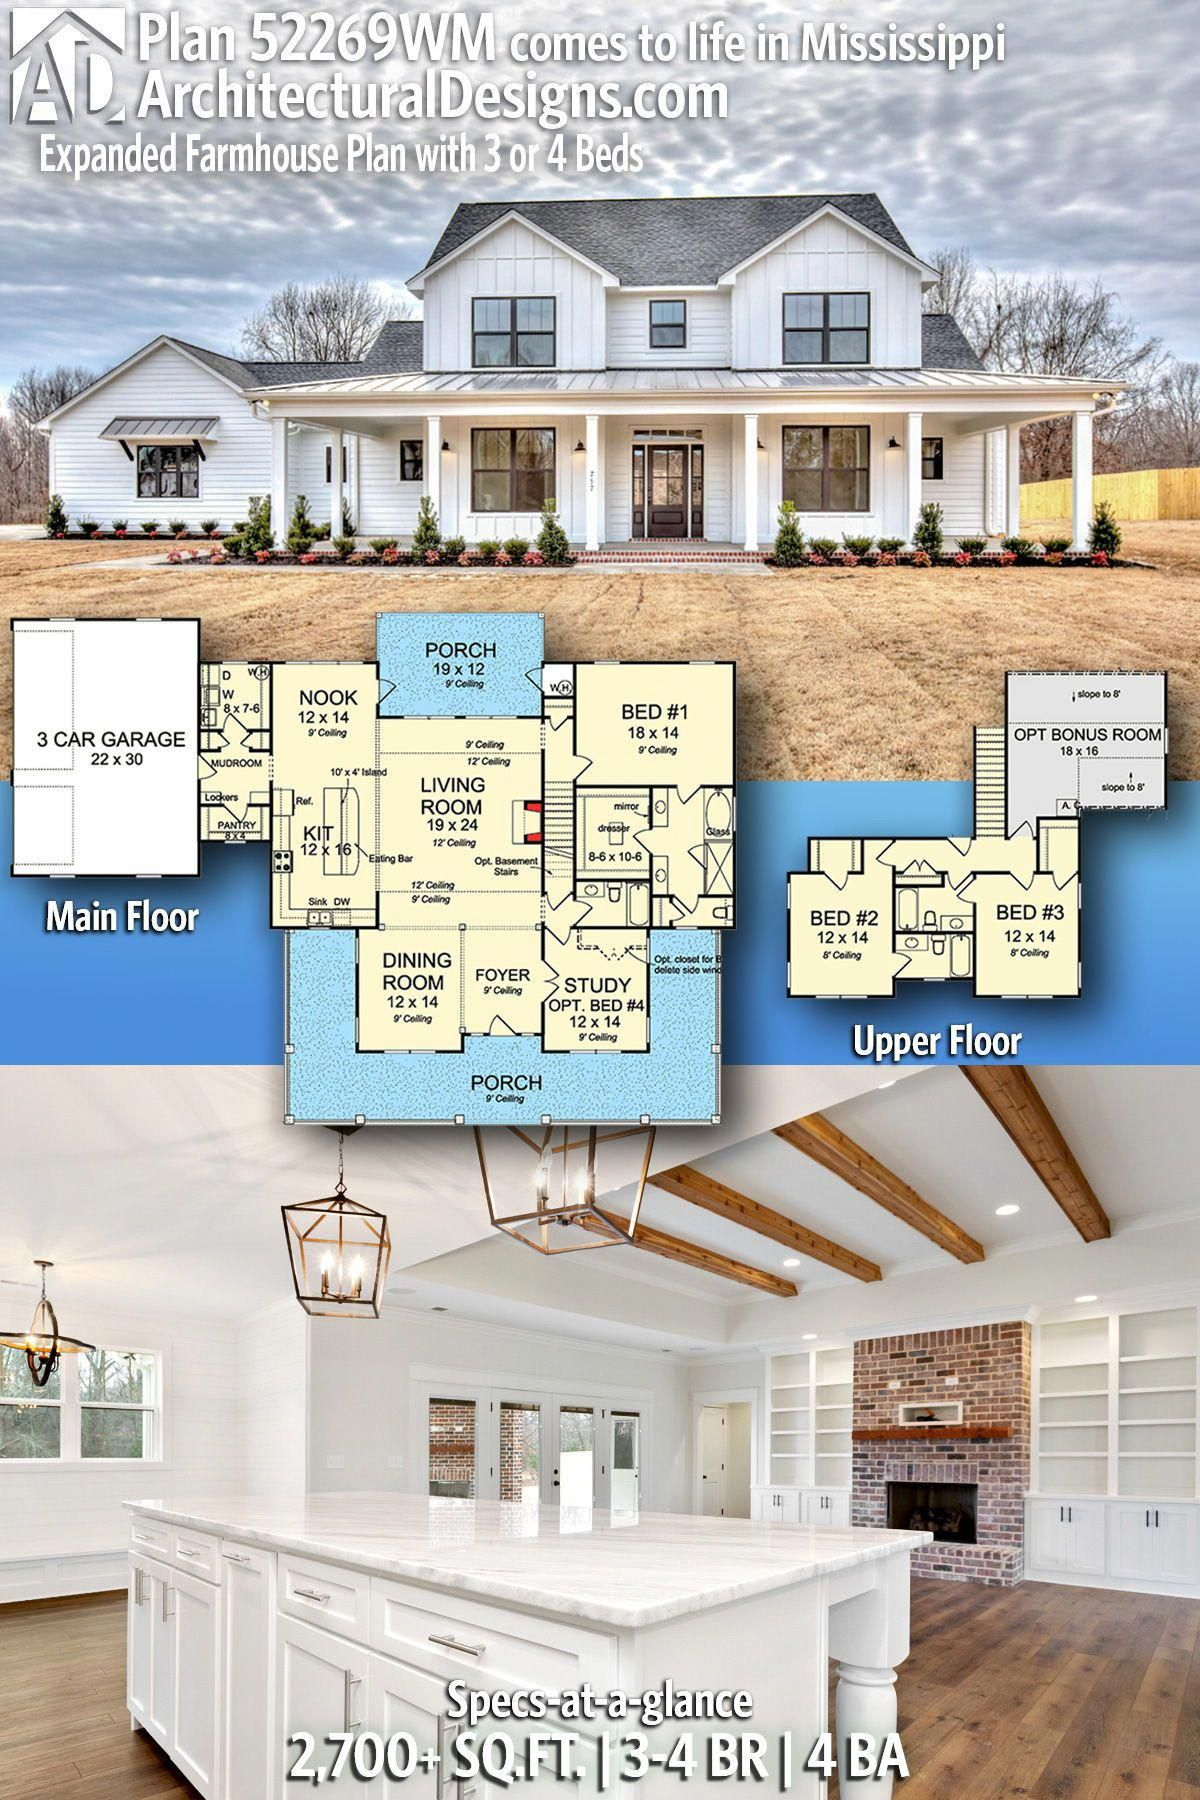 2700 Sq Ft Switch Kitchen Nook Use Dining As Playroom Architectural Designs Farmhouse Plan 52269wm Cli House Plans Farmhouse Farmhouse Plans Dream House Plans